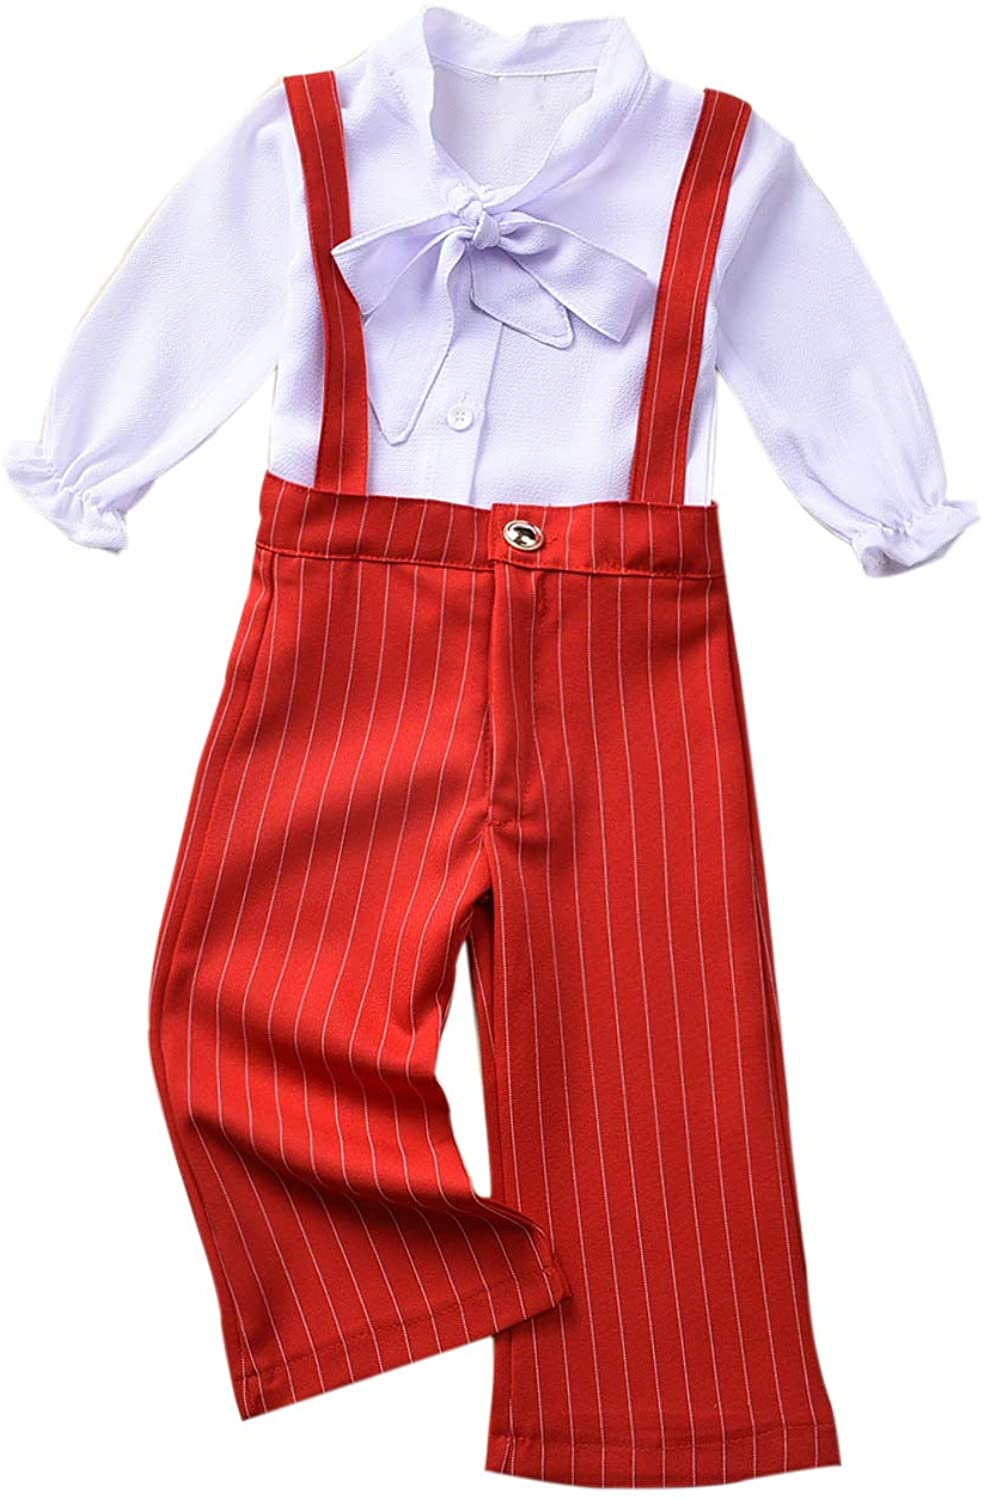 Fioukiay Toddler-Girl-Uniform-Overall-Outfits Chiffon Blouse Shirts Tops+Striped Suspenders Pants Office Style Clothes Set